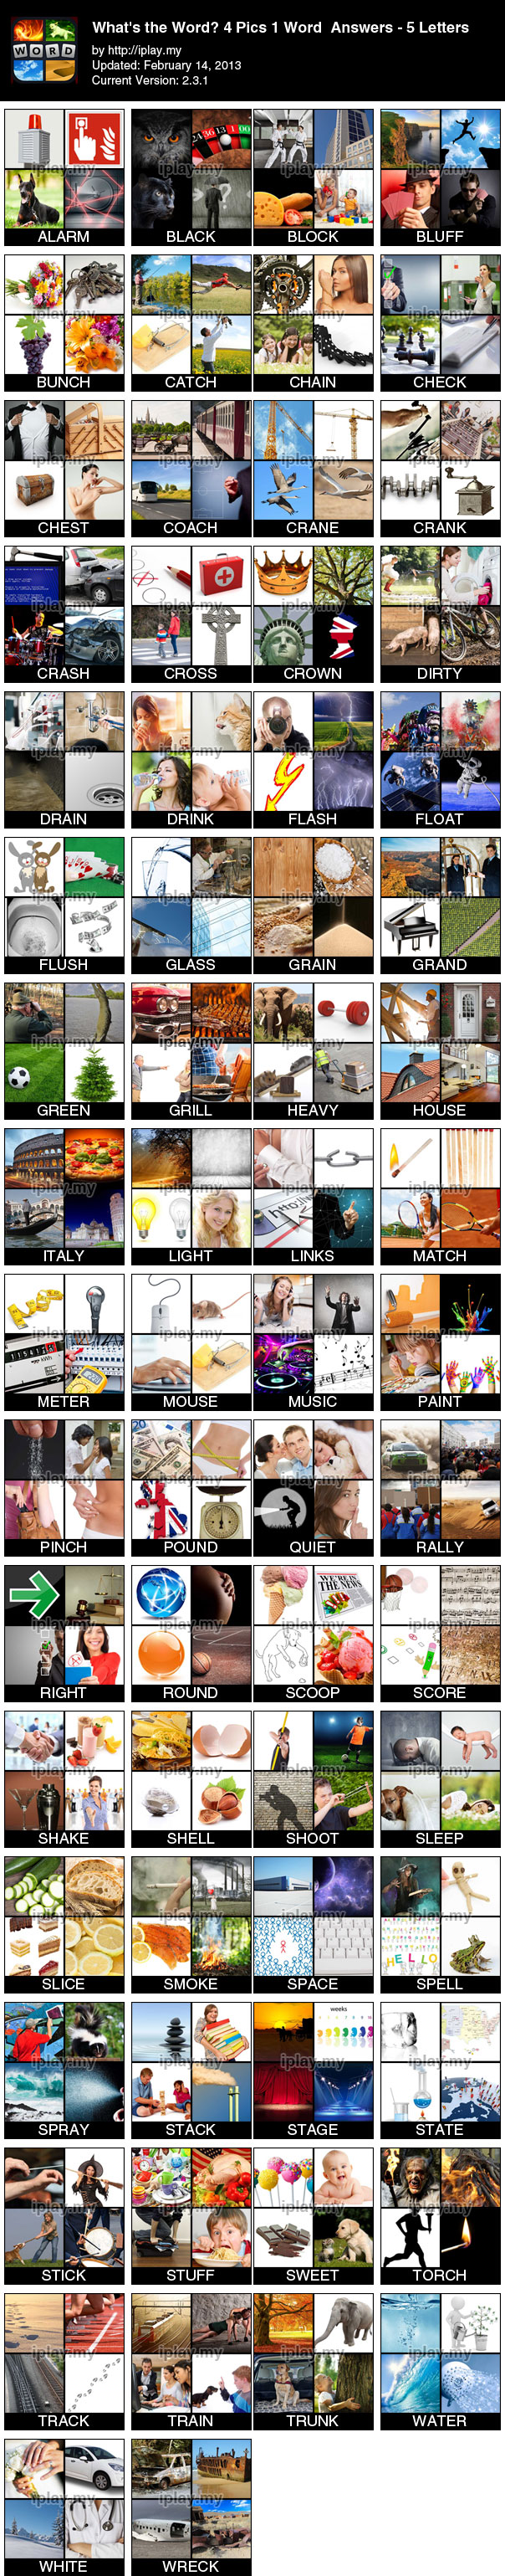 the current answers to cheat 5-Letter words trivia in 4 Pics 1 Word